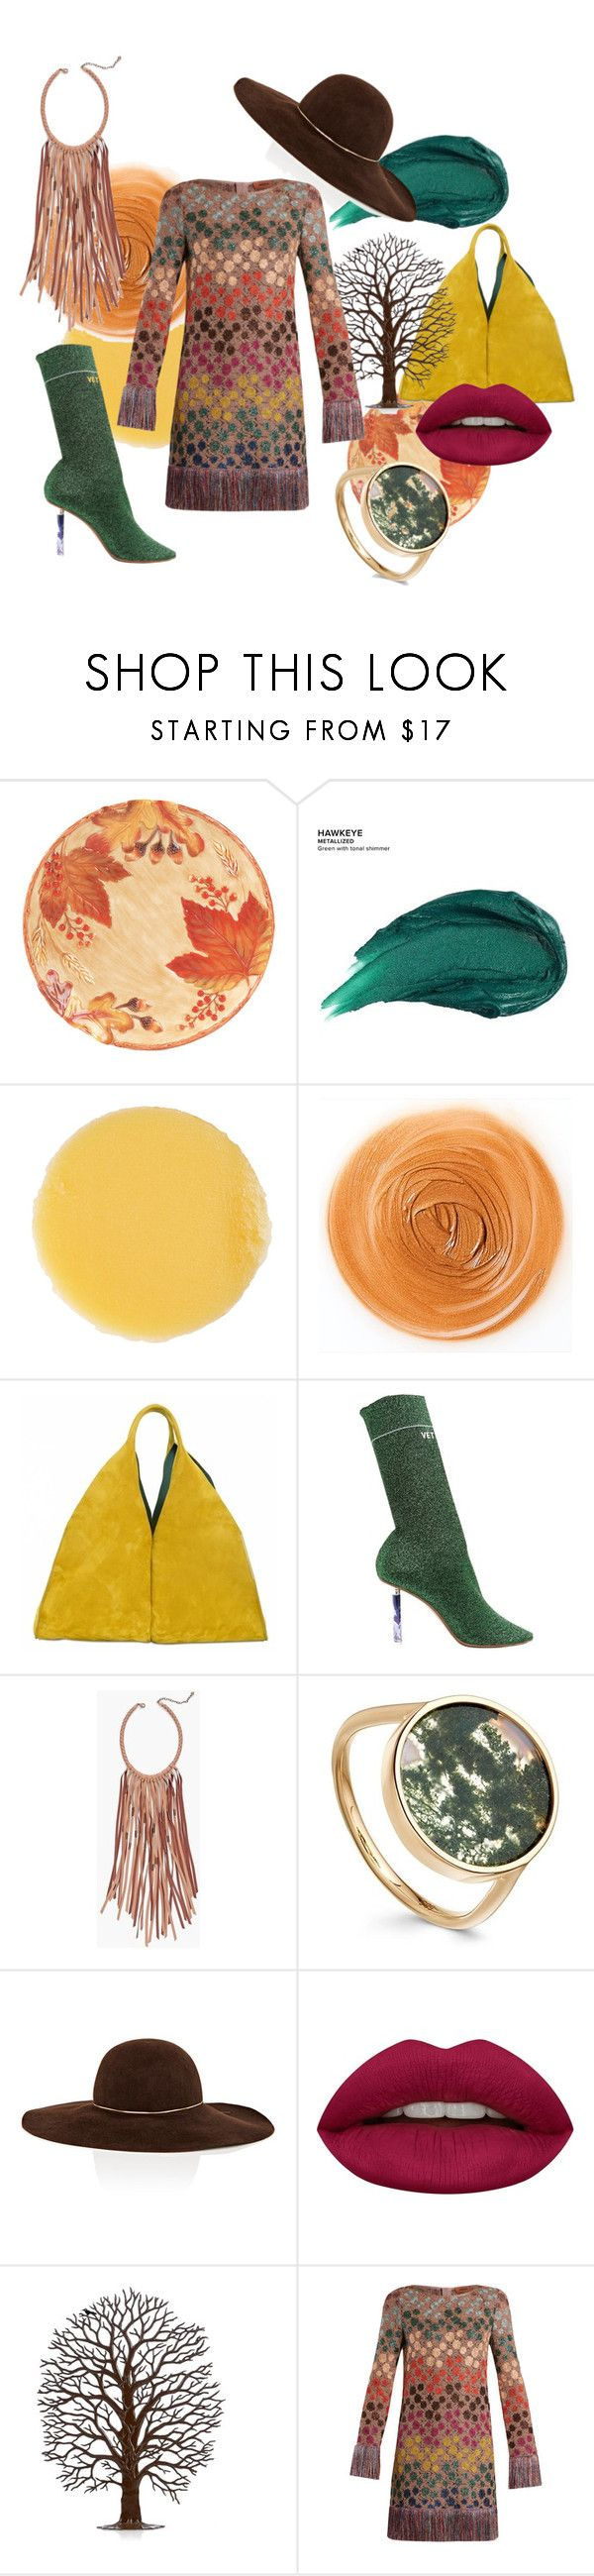 """""""Longing for fall"""" by anitaslagman ❤ liked on Polyvore featuring Fitz & Floyd, Urban Decay, Lipstick Queen, Onesixone, Vetements, Chico's, Eugenia Kim, Huda Beauty, Missoni and missoni"""